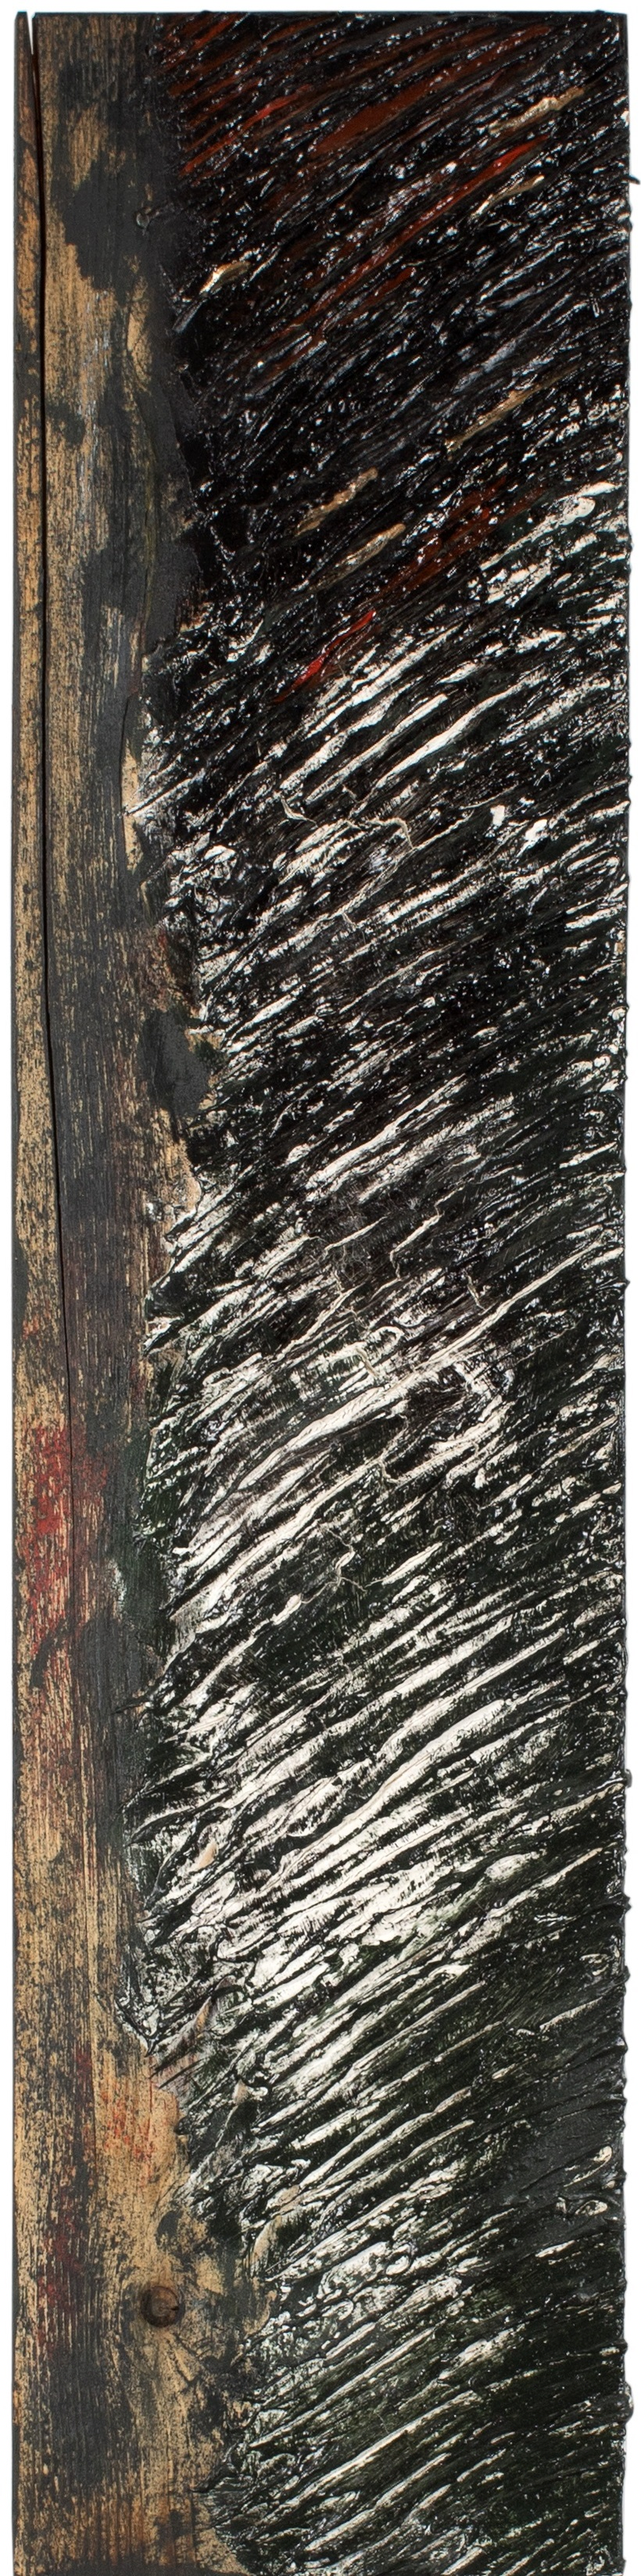 TRACCE#2 - Plaster and enamel on rough spruce board, 20x83cm - AVAILABLE